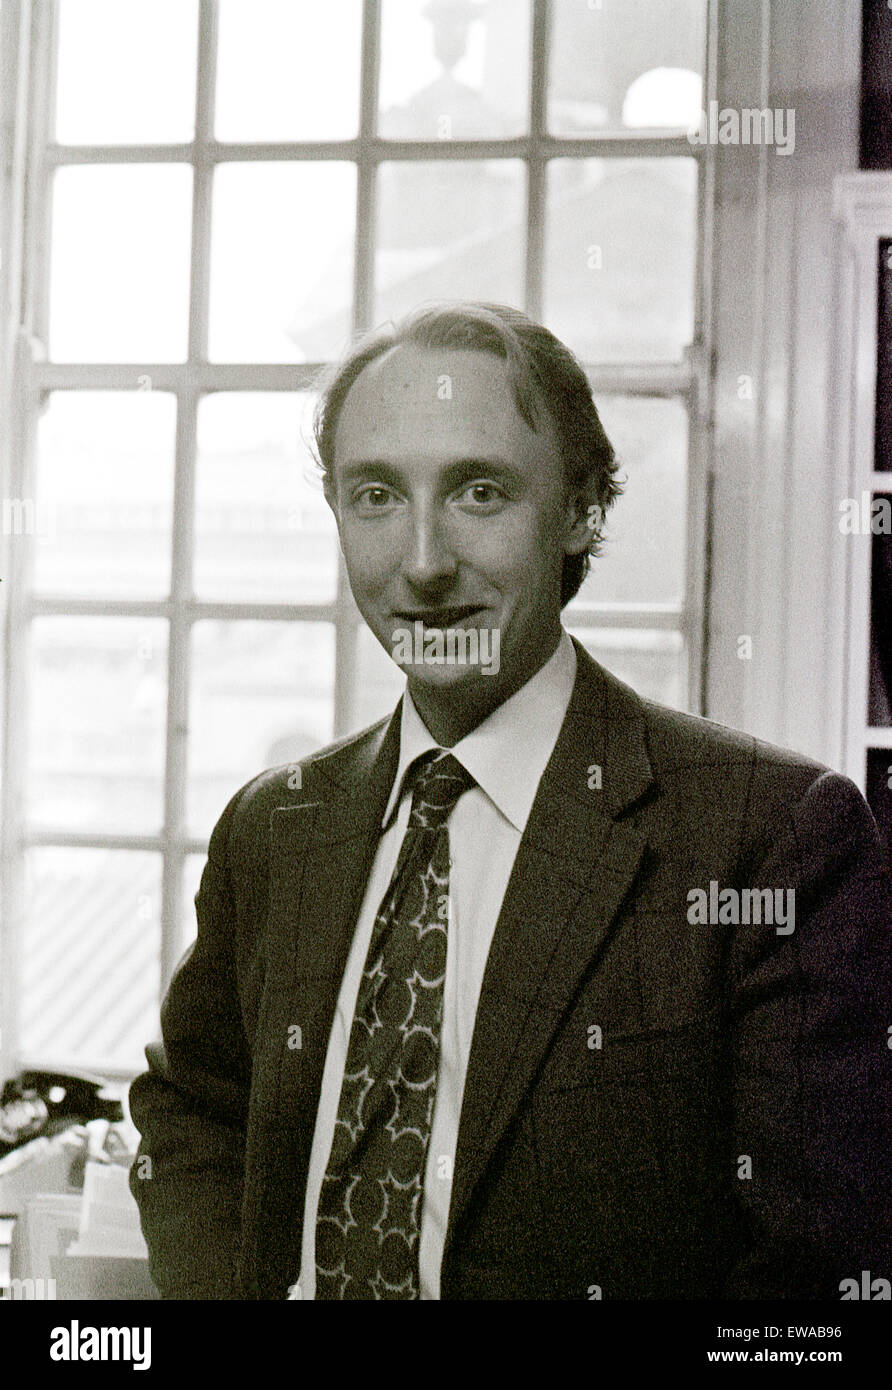 Architectural historian and author Marcus Binney CBE in 1975 now President of SAVE Britain's Heritage, London - Stock Image